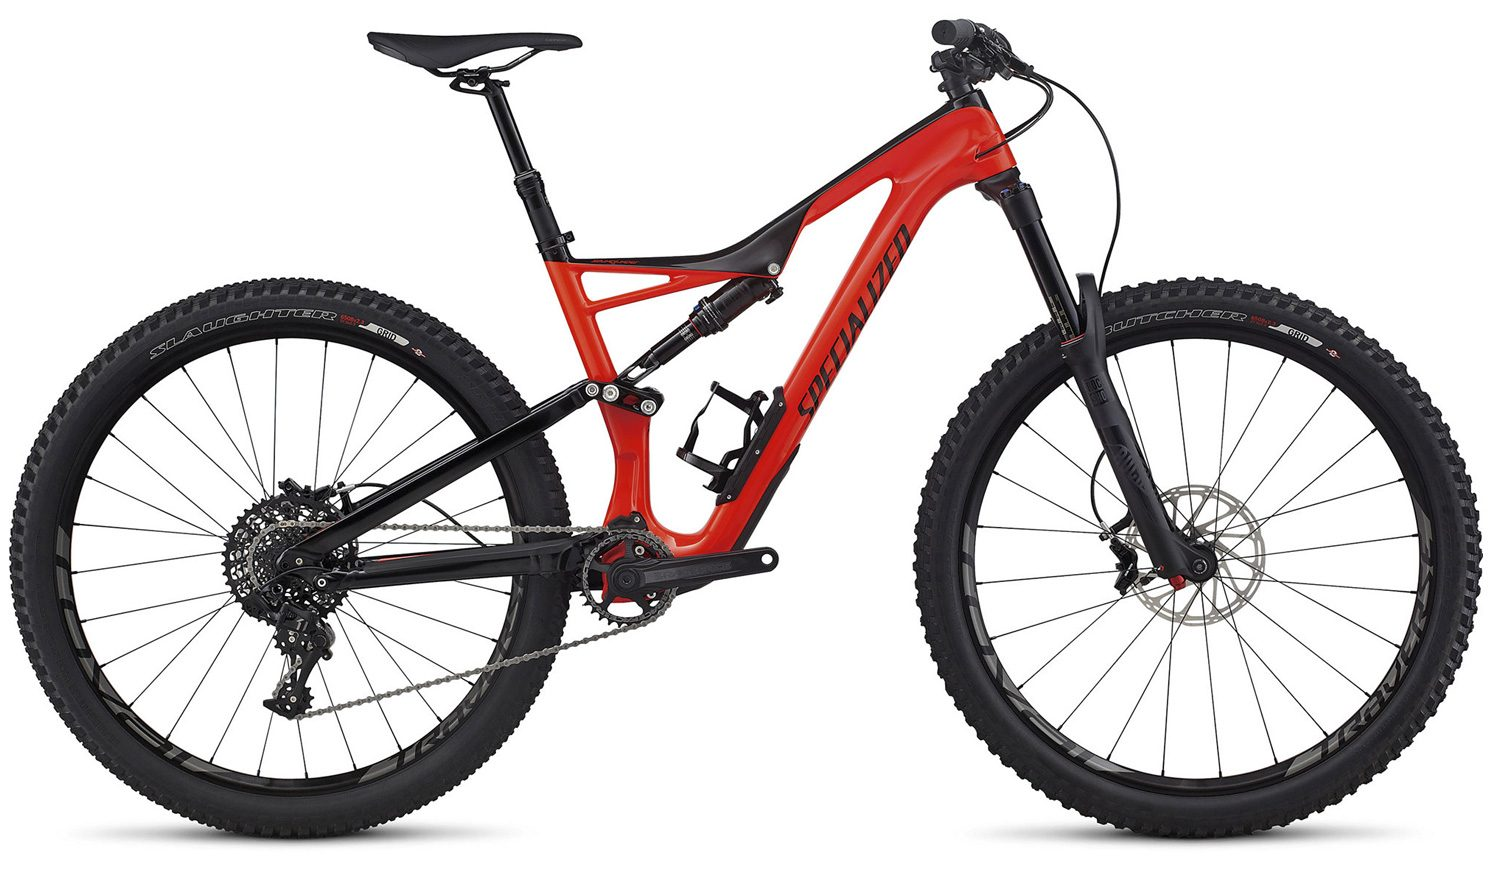 Stumperjumper FSR Expert Carbon 650b